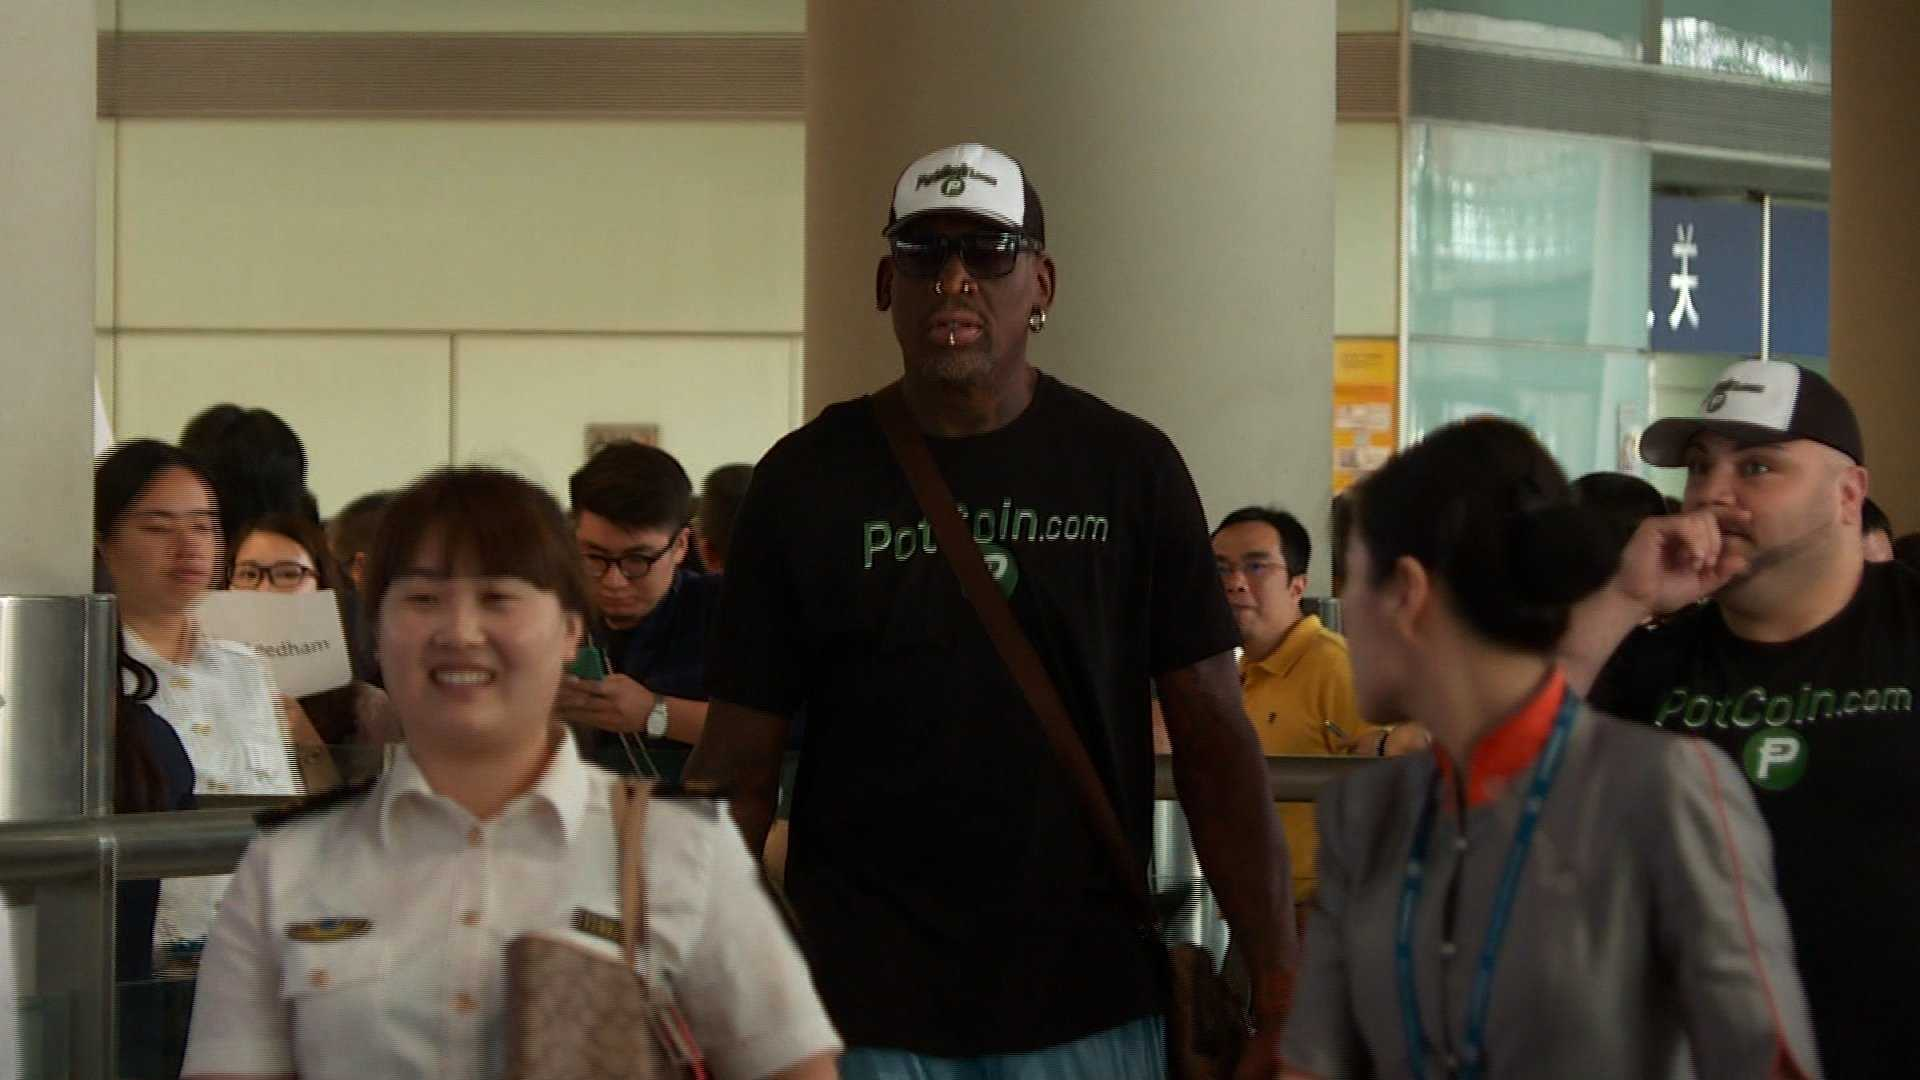 Dennis Rodman heading to North Korea - KBZK.com | Continuous News | Bozeman, Montana